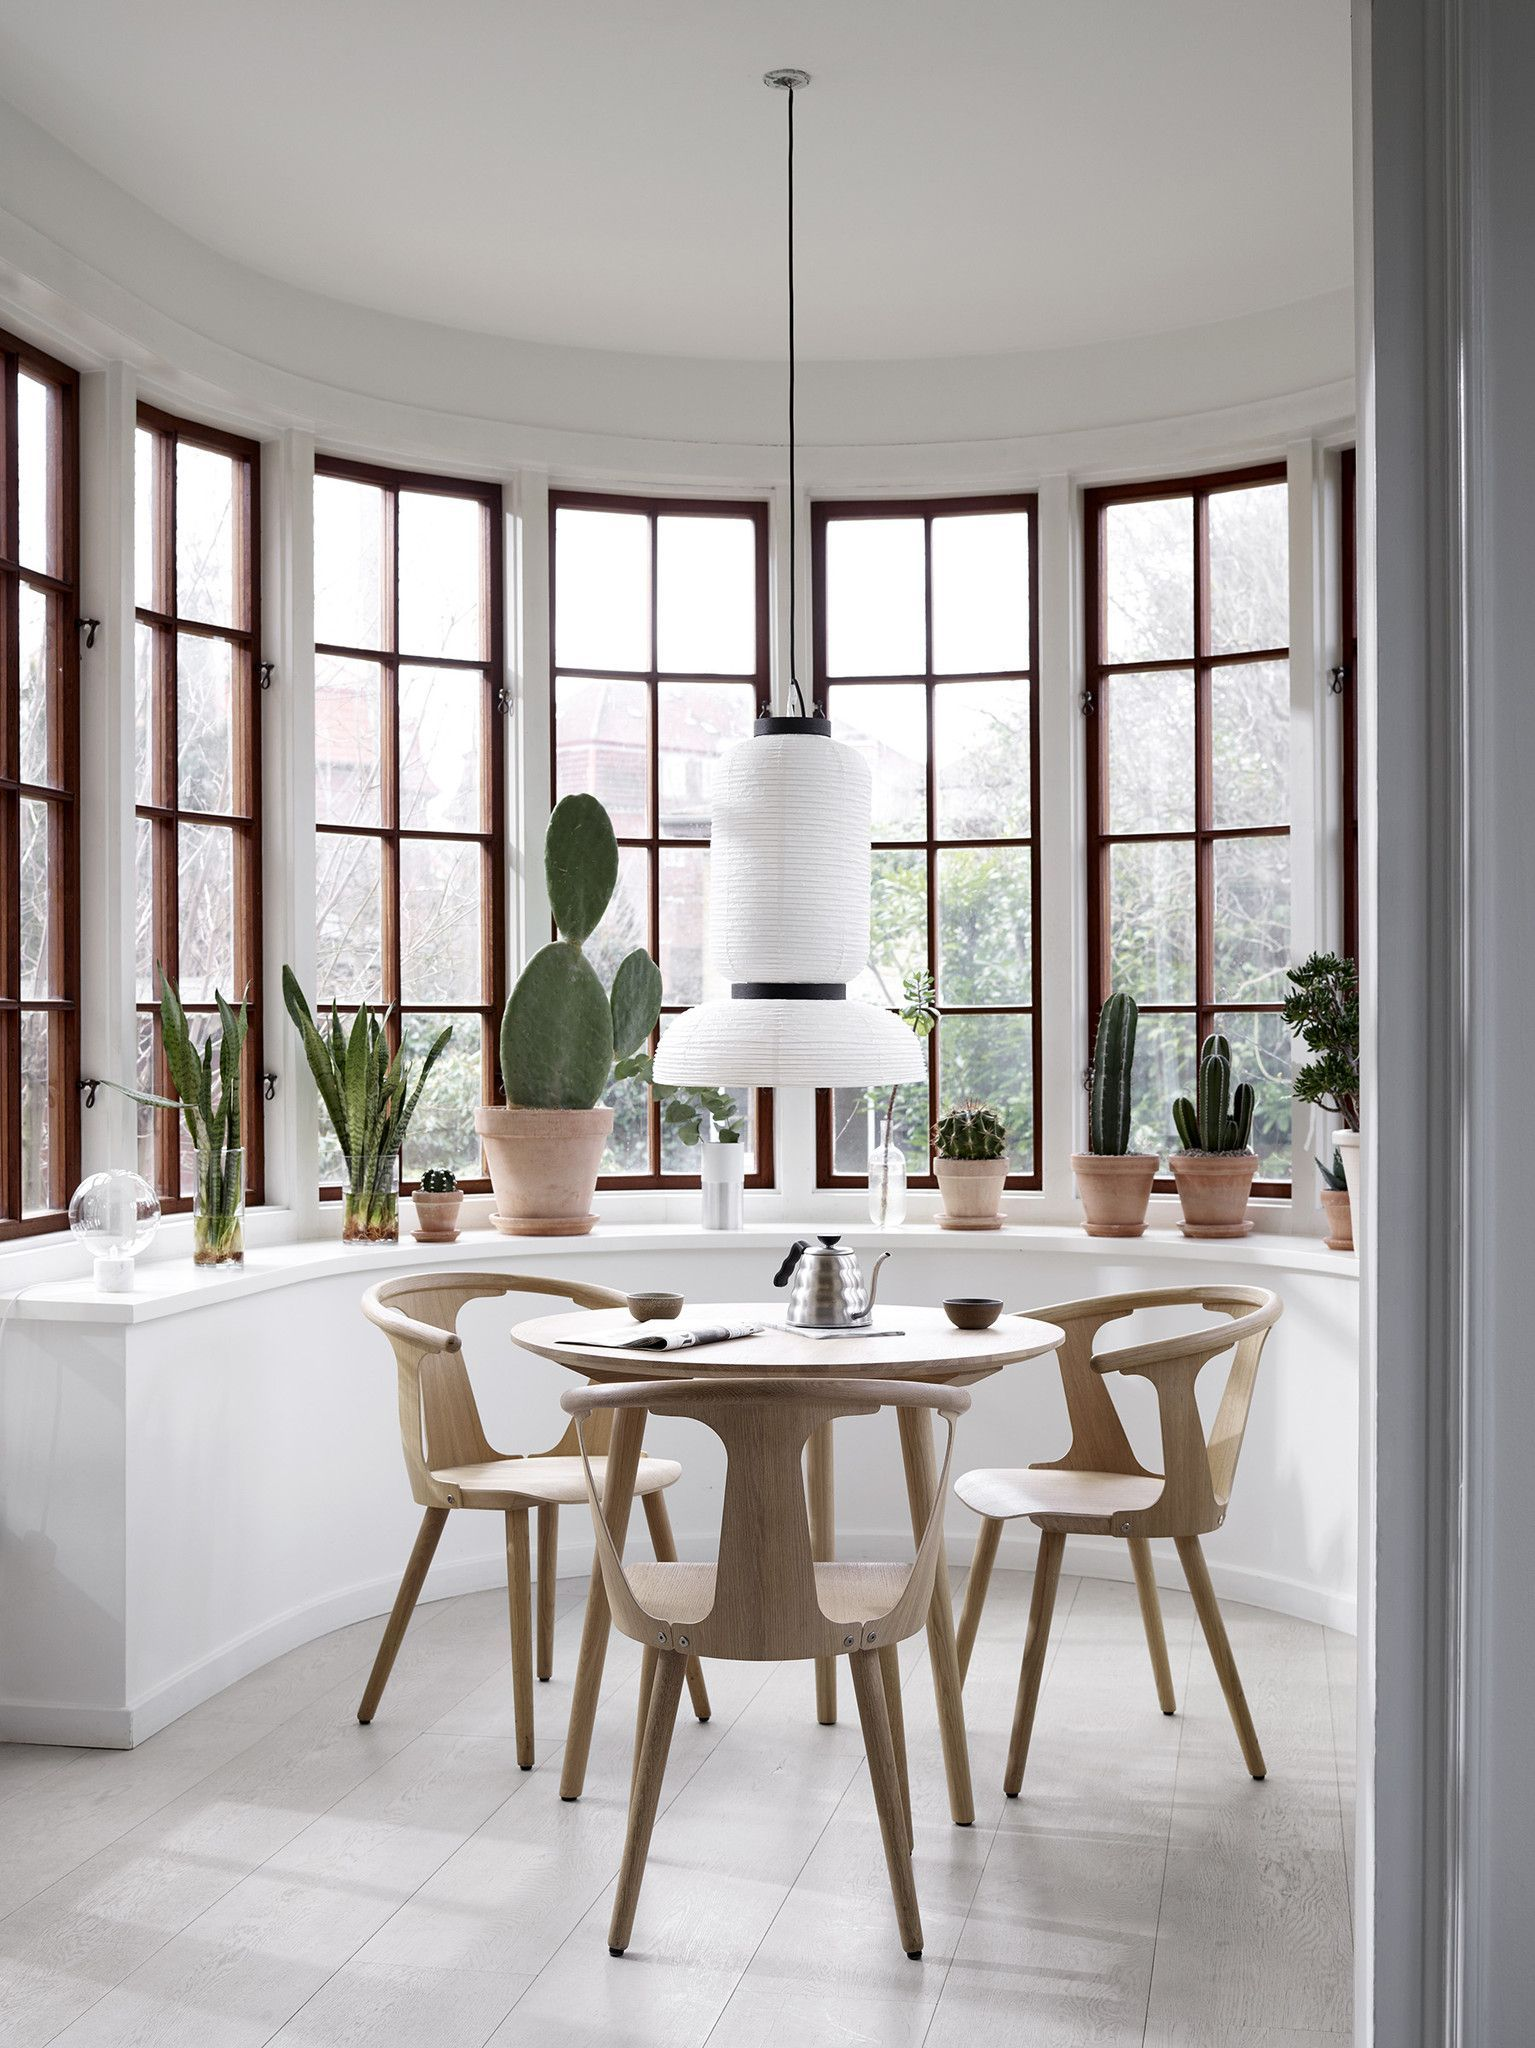 Formakami Jh3 Pendant Dining Room Design Modern Dining Chairs Dining Chairs